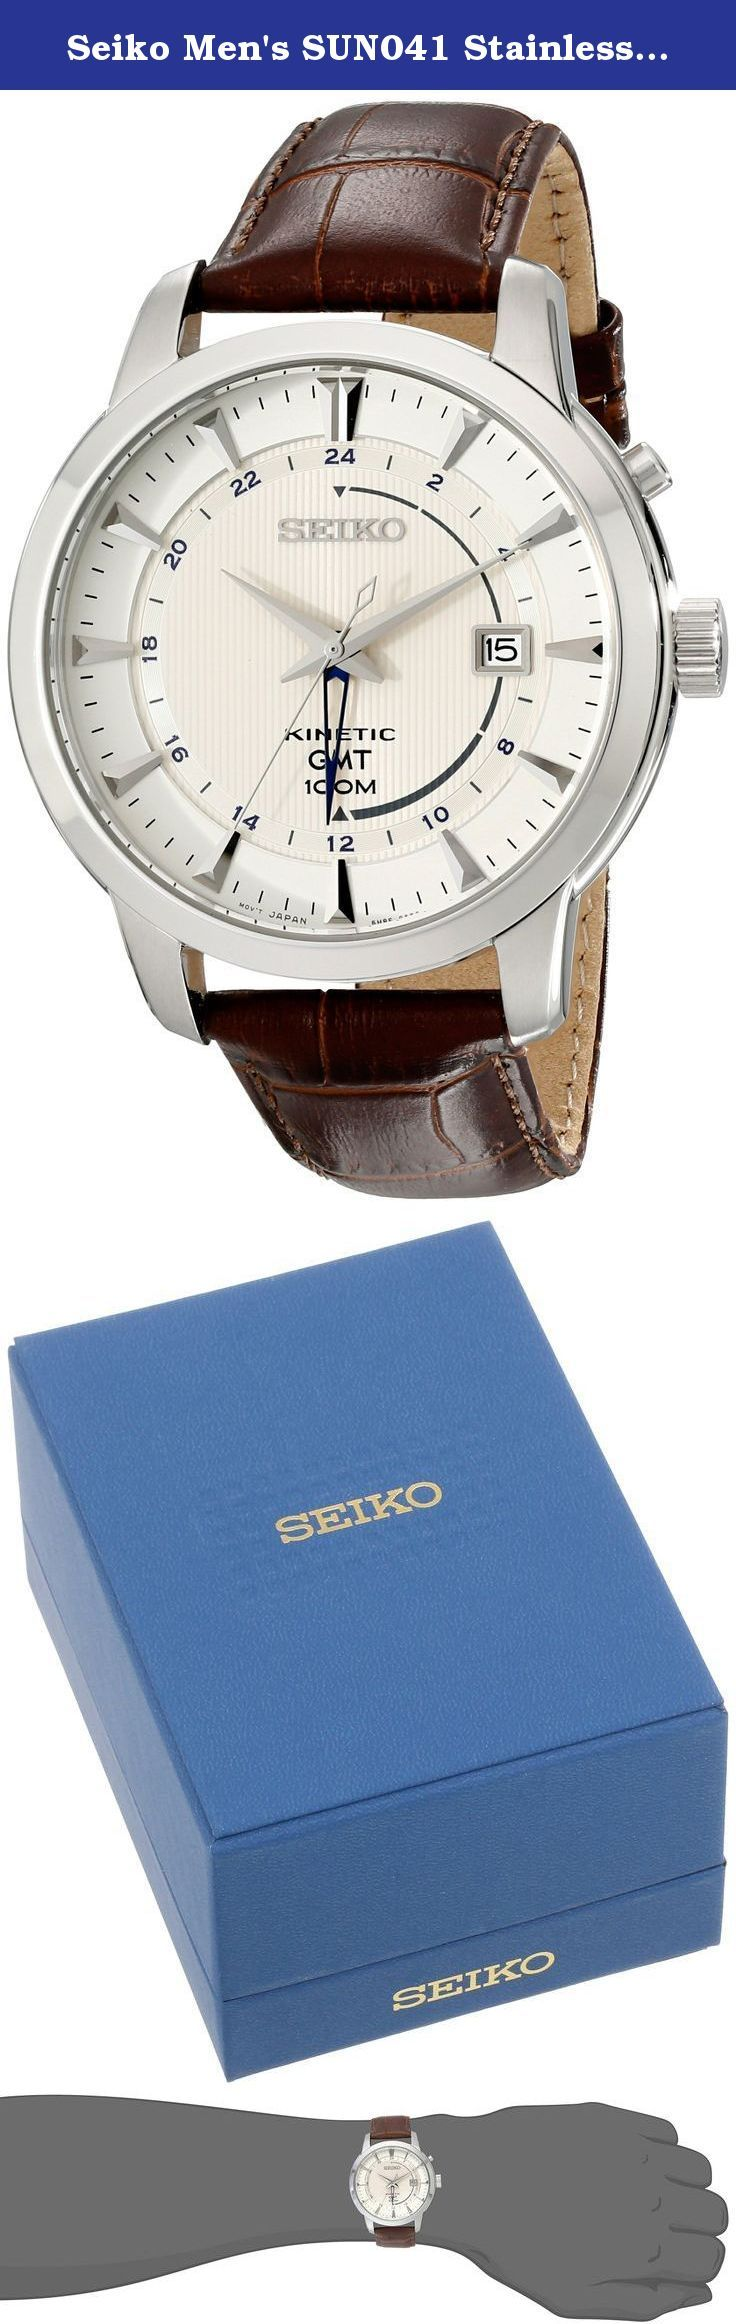 Seiko Men's SUN041 Stainless Steel Watch with Brown Band. Dress watch, Kinetic movement (wearer's movement powers battery), Power reserve indicator, GMT (Greenwich Mean Time) function, Polished silver-tone hands, Polished silver-tone sweep seconds, Additional silver-tone GMT hand, Polished silver-tone markers, Black Arabic numbers form 24-hour track, Black indices form minute track, Analog date, Ivory dial with pinstripe texture and polished silver-tone logo applique, Brown croc-embossed...